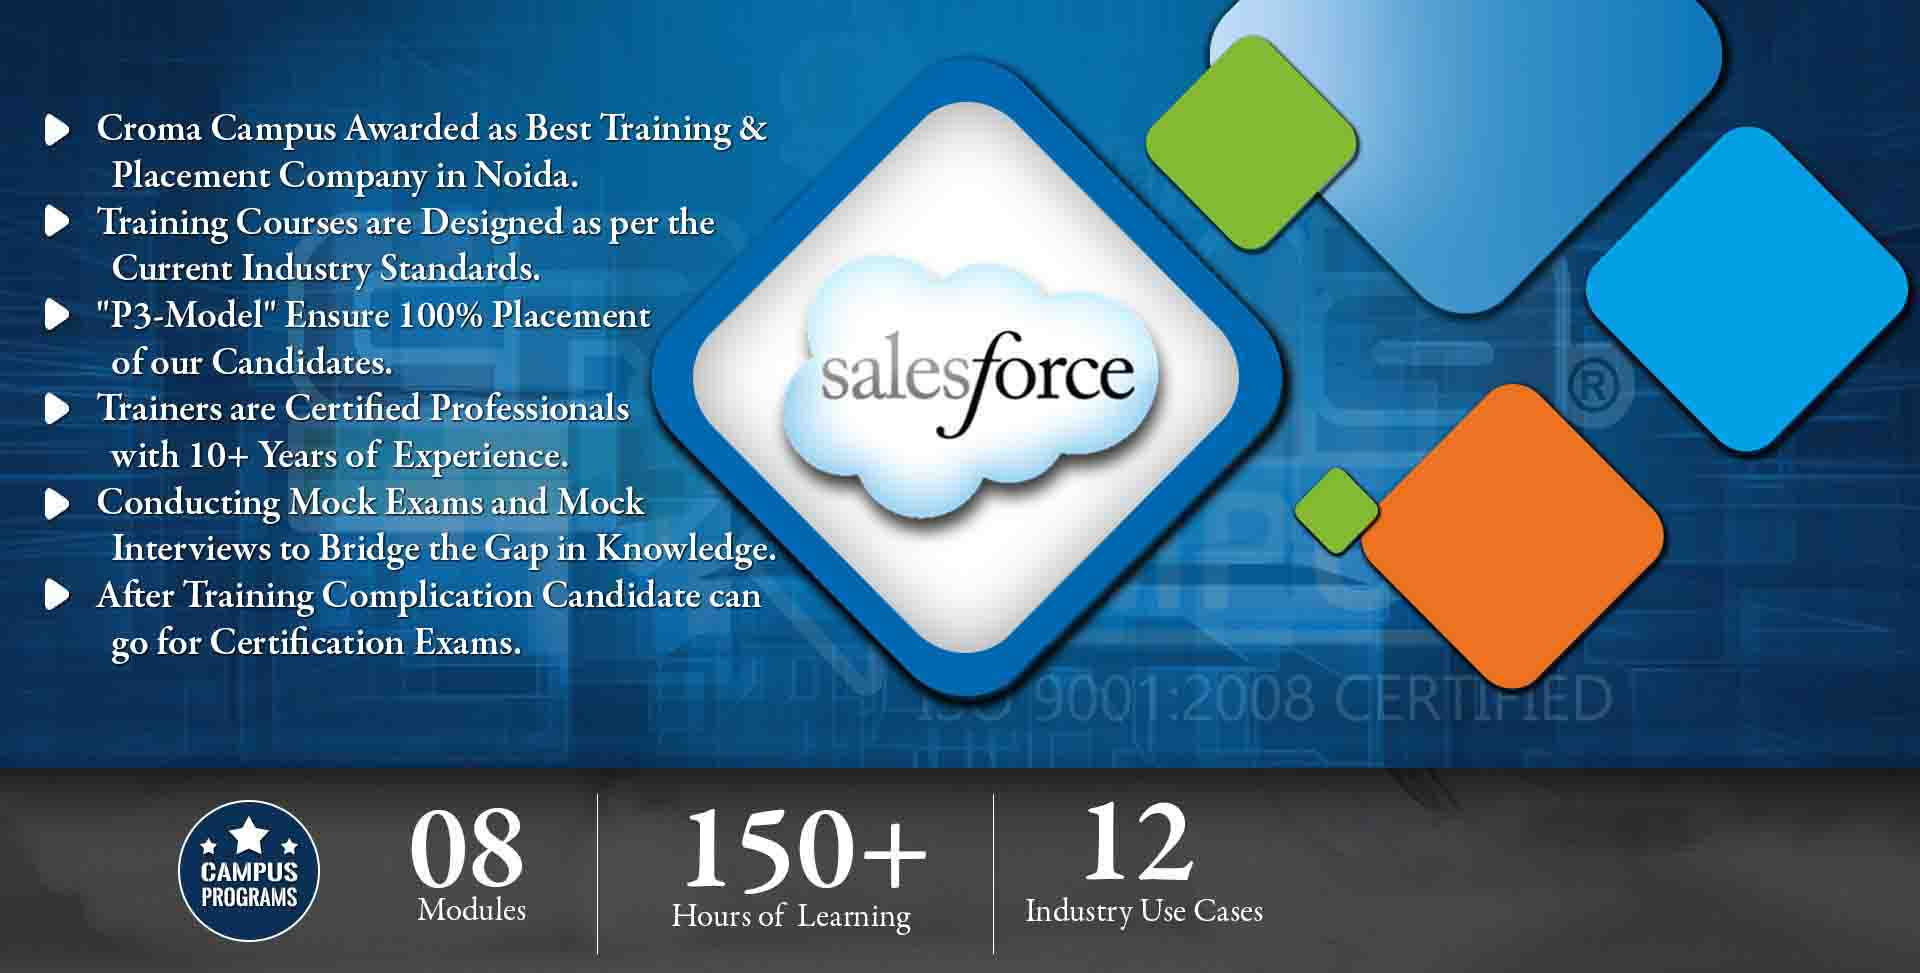 Salesforce Training in - Croma Campus